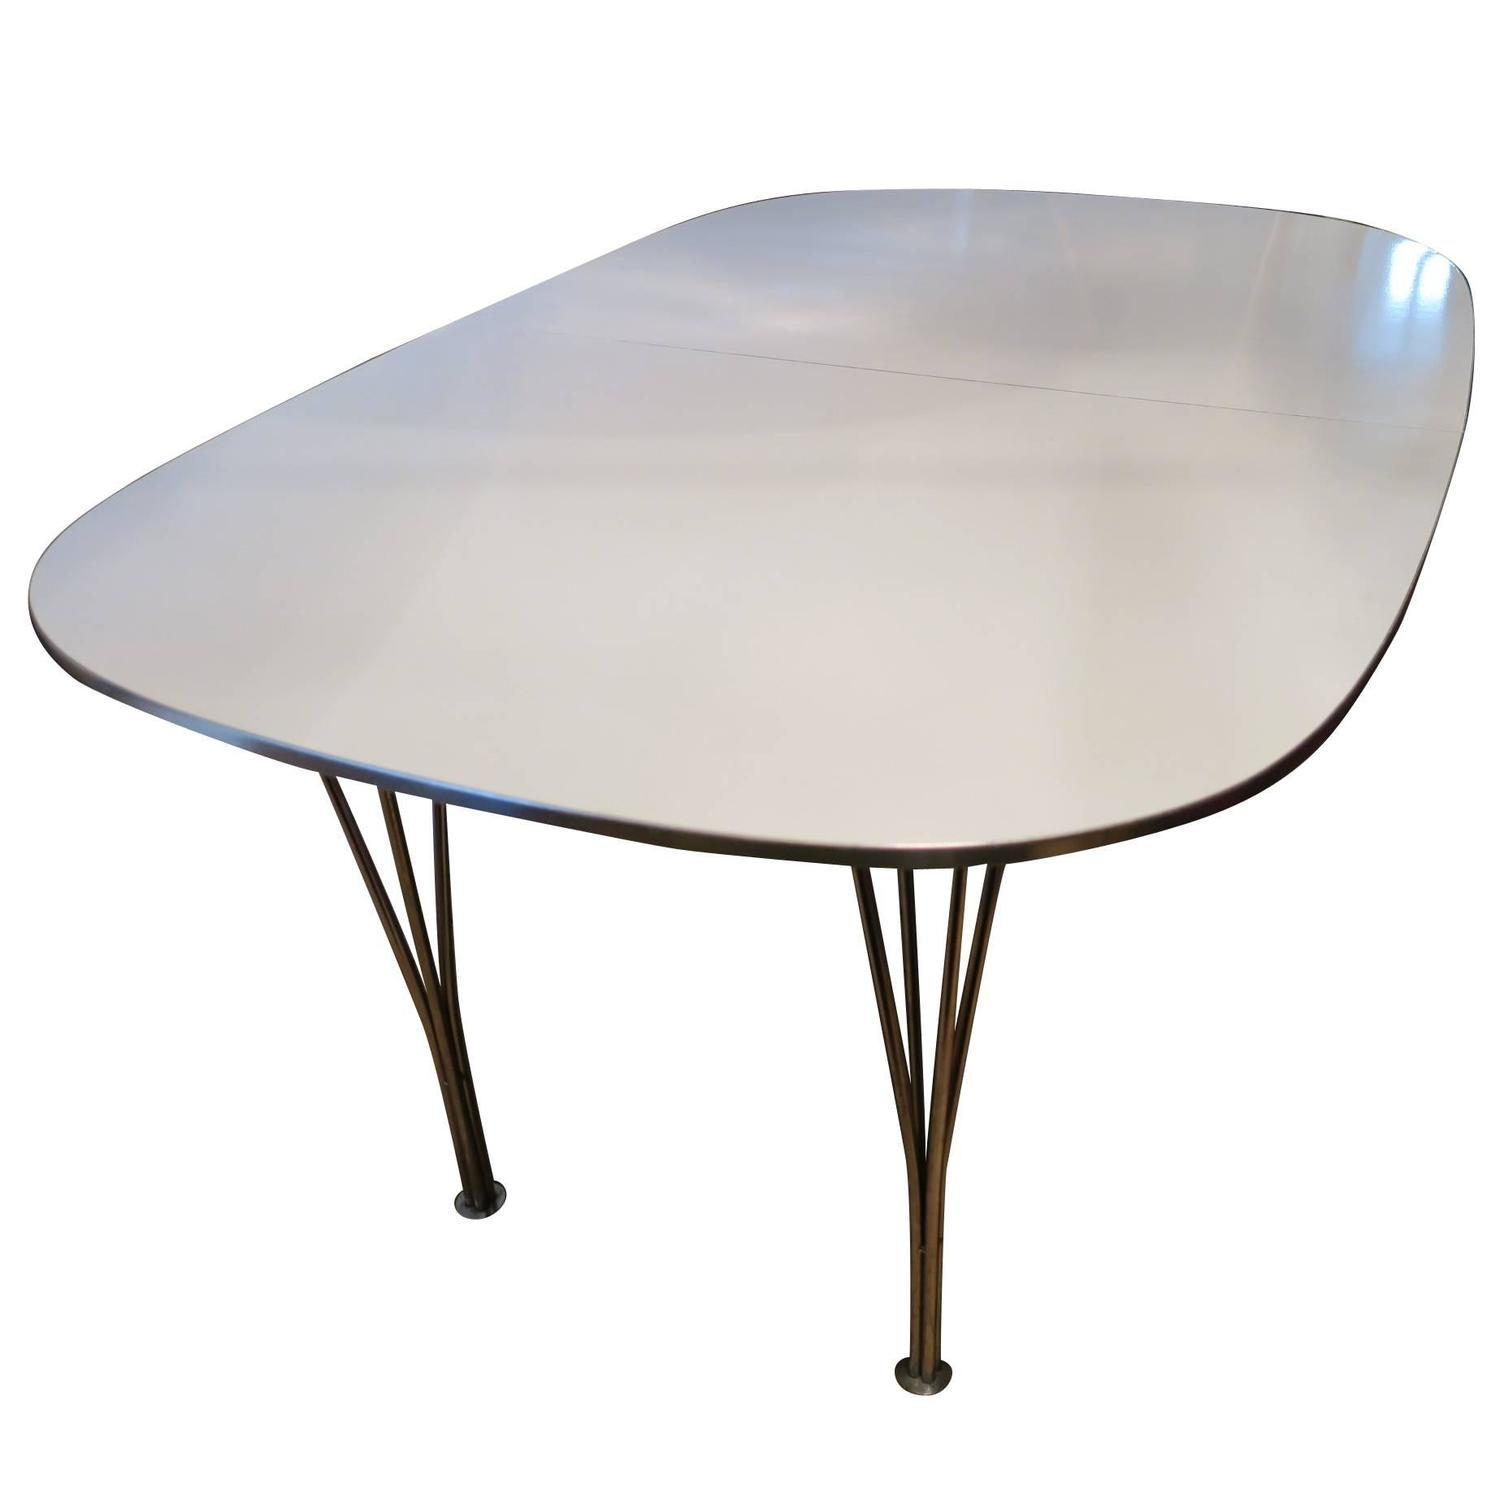 Danish Elliptical Extendable Table With Hairpin Legs, Mid Century For Sale  At 1stdibs